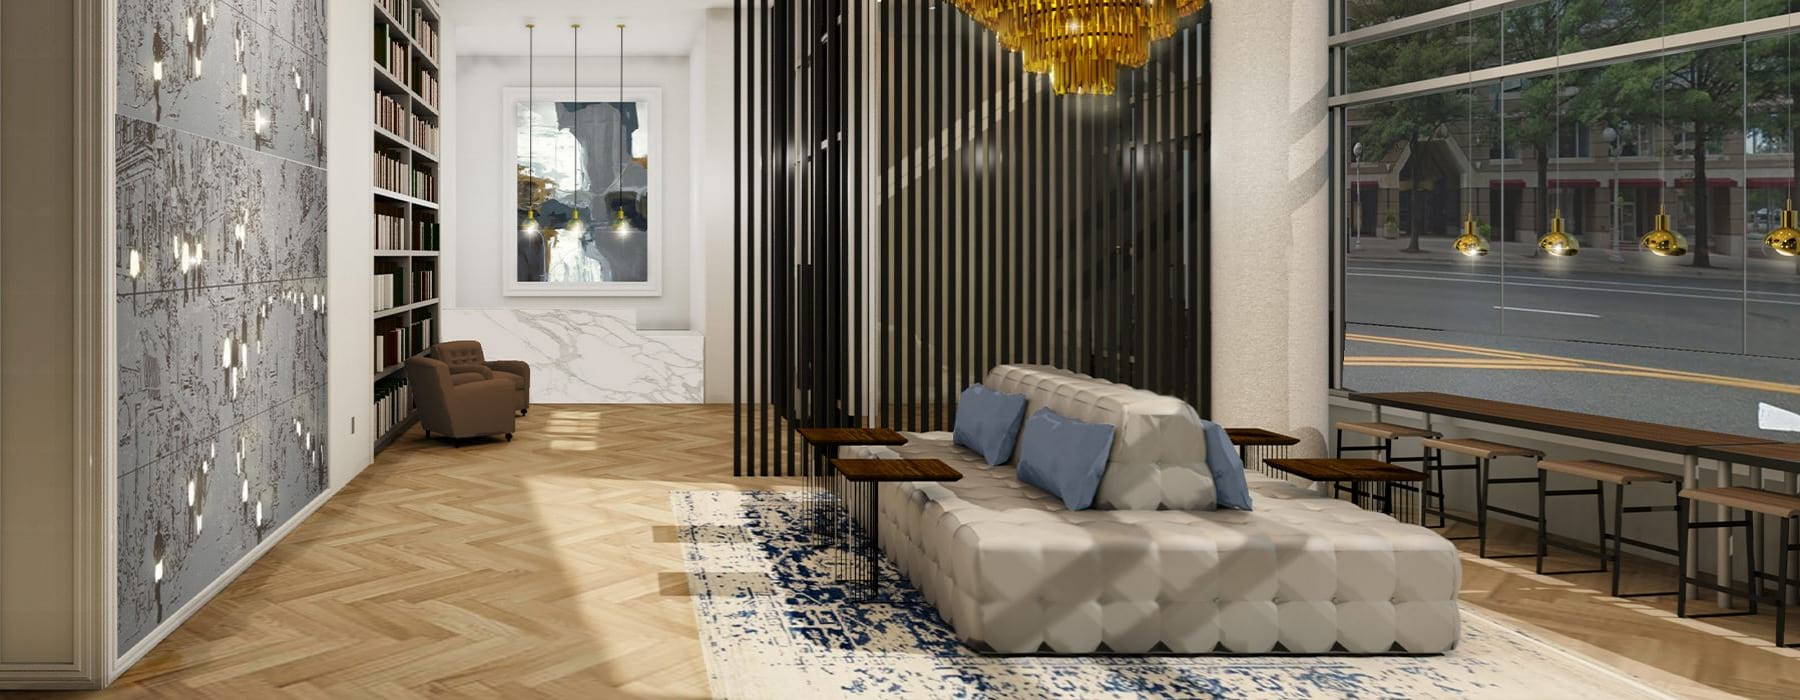 Lobby Space With Seating Area At J Sol Apartments In Arlington, VA